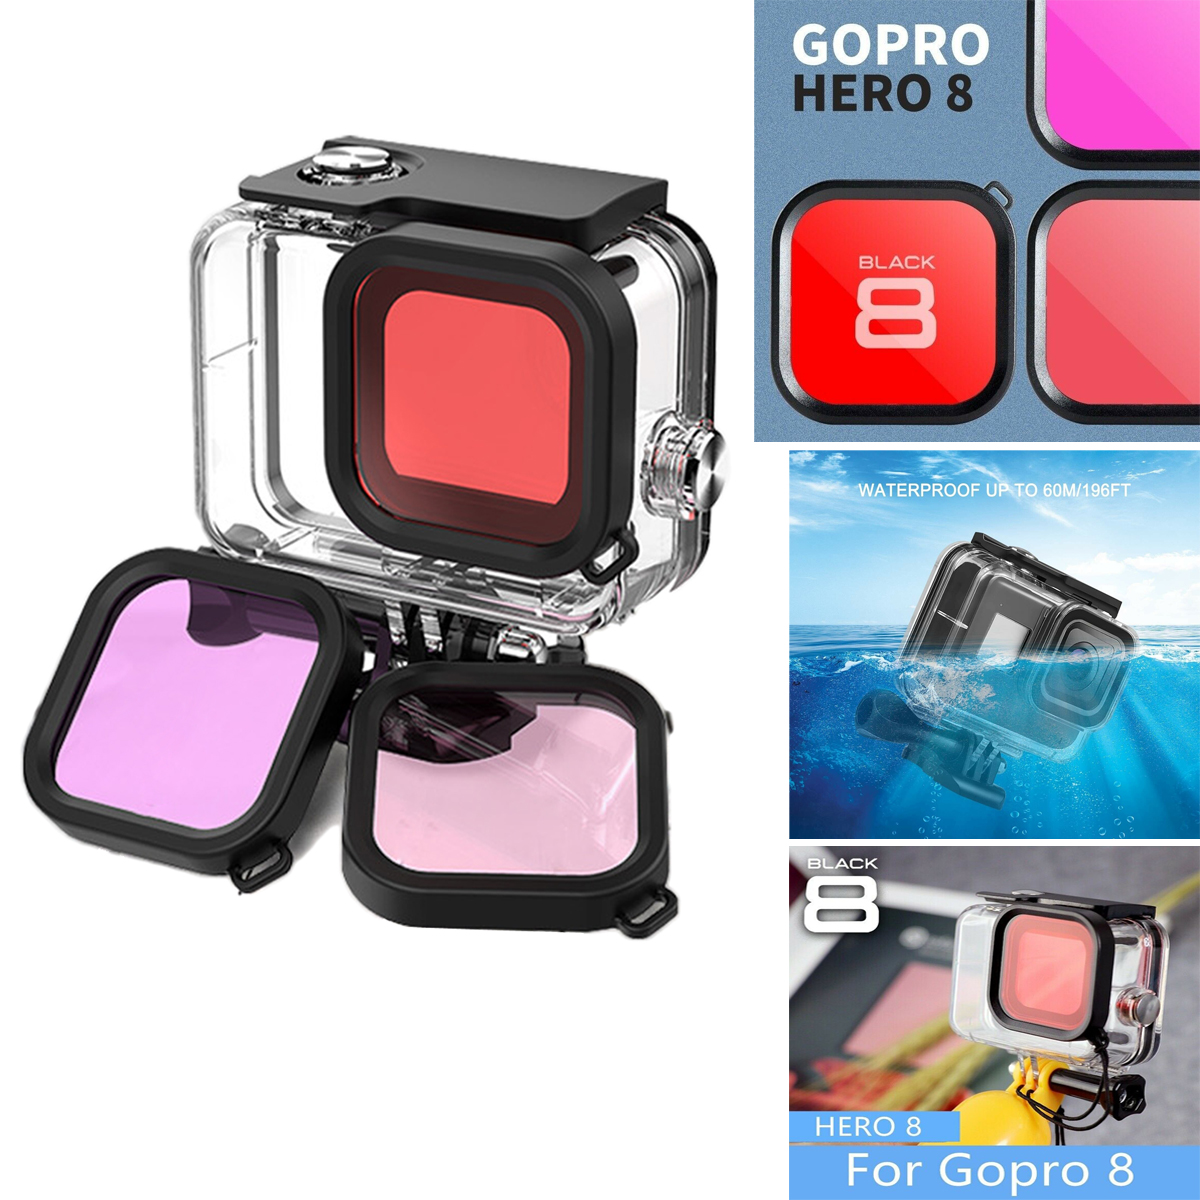 IP68 for Gopro Hero 8 Black Accessories Waterproof Protection Housing Case Diving 60M Protective for Gopro Hero 8 Sports Camera